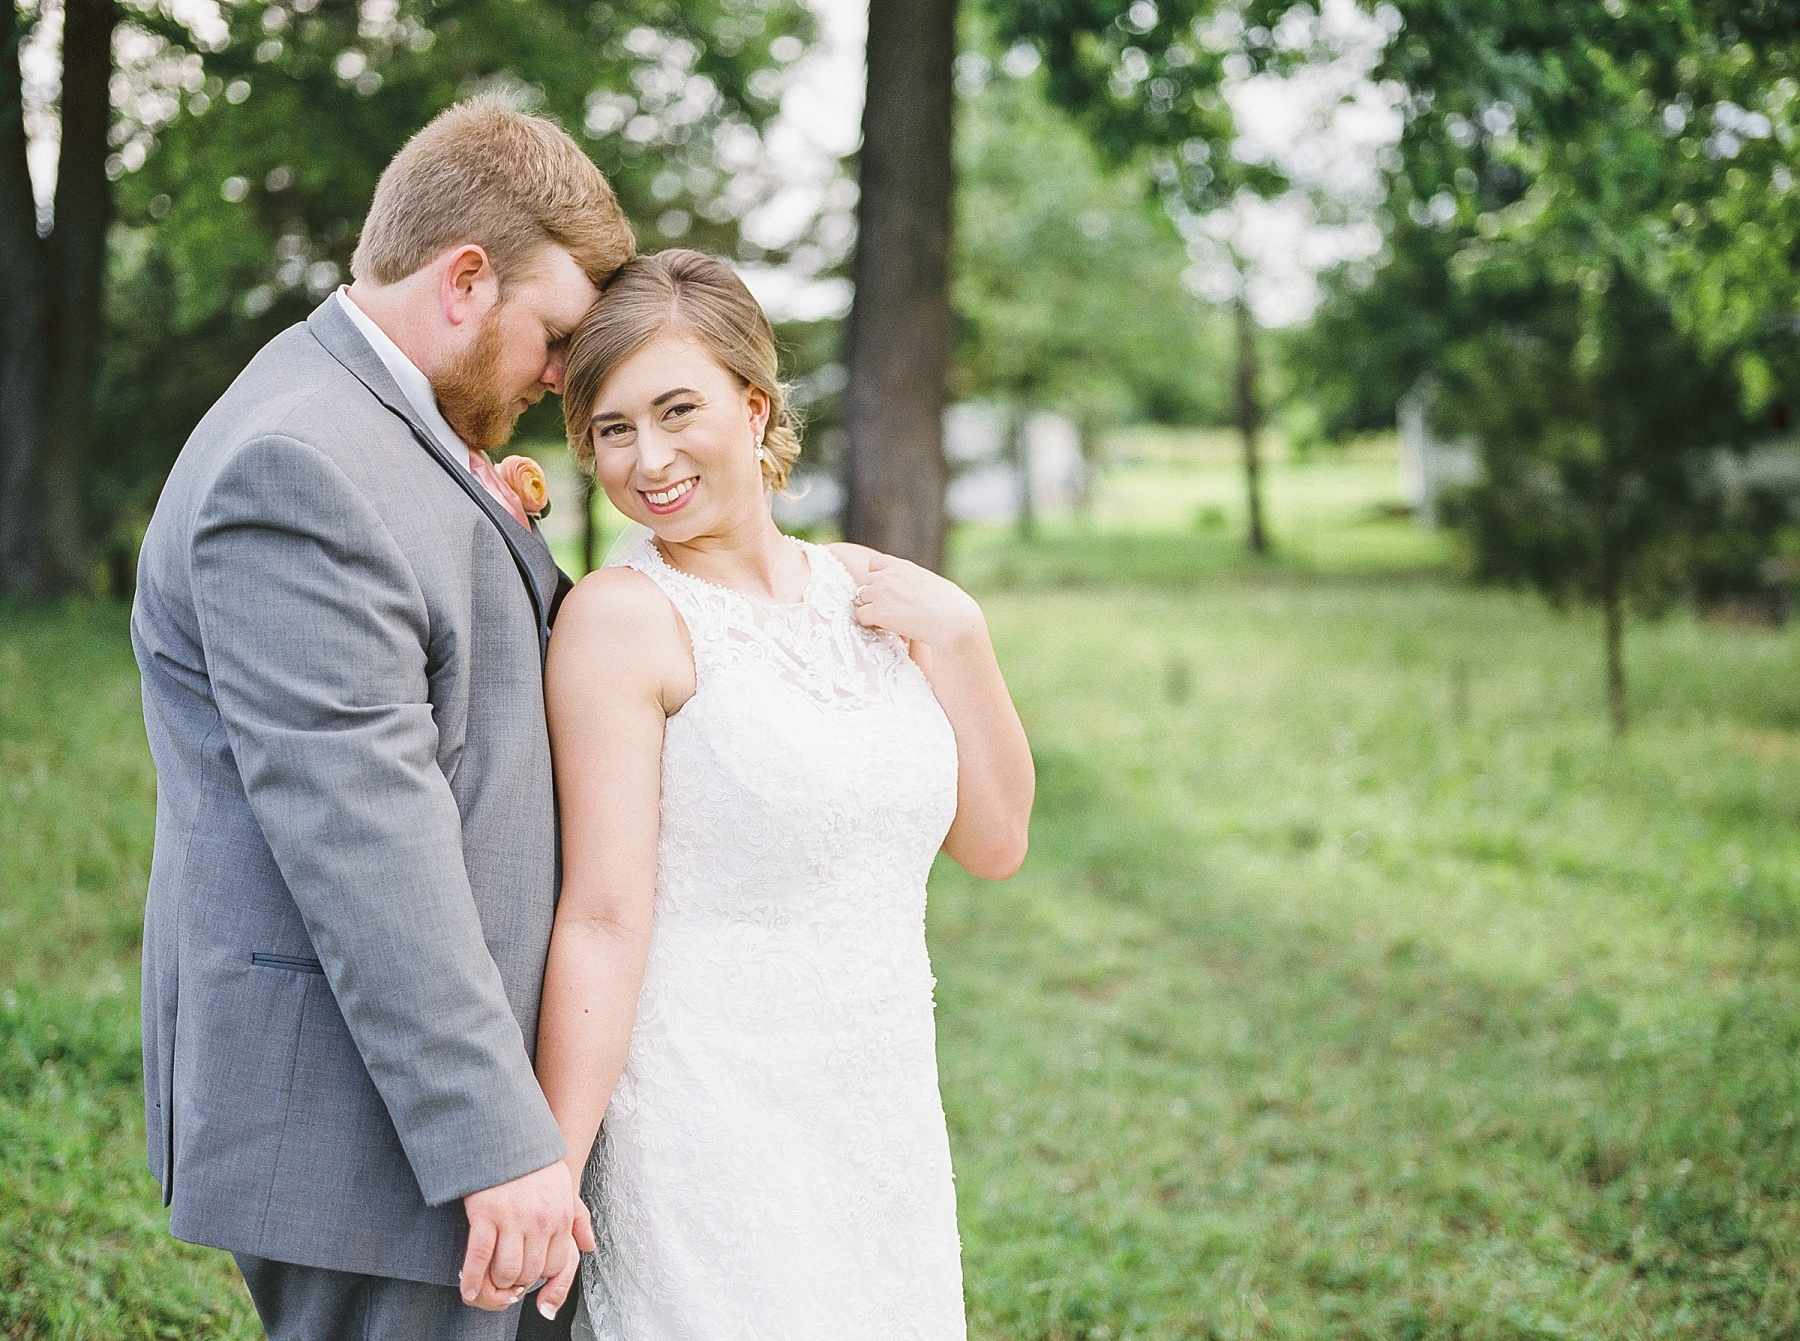 Peach and Dusty Blue Spring Wedding in Rolling Hills of Mid Missouri by Kelsi Kliethermes Photography Best Missouri and Maui Wedding Photographer_0018.jpg